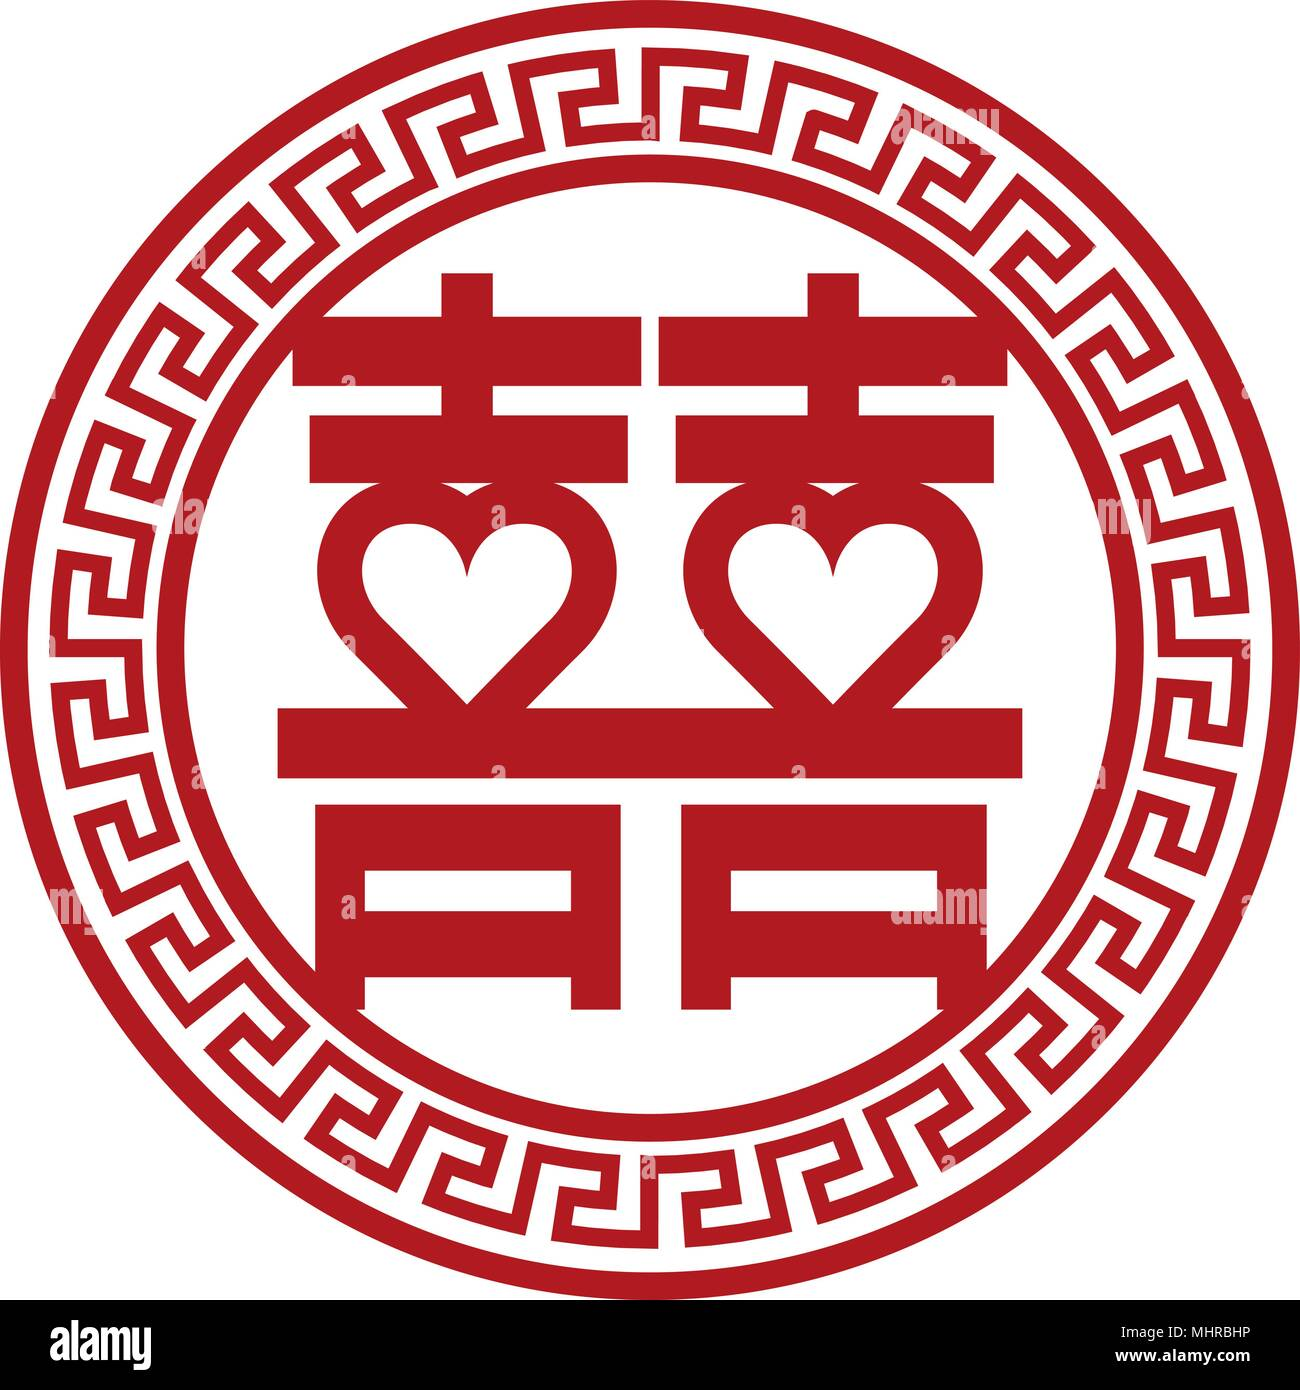 Chinese Character Double Happiness Stock Photos & Chinese Character ...